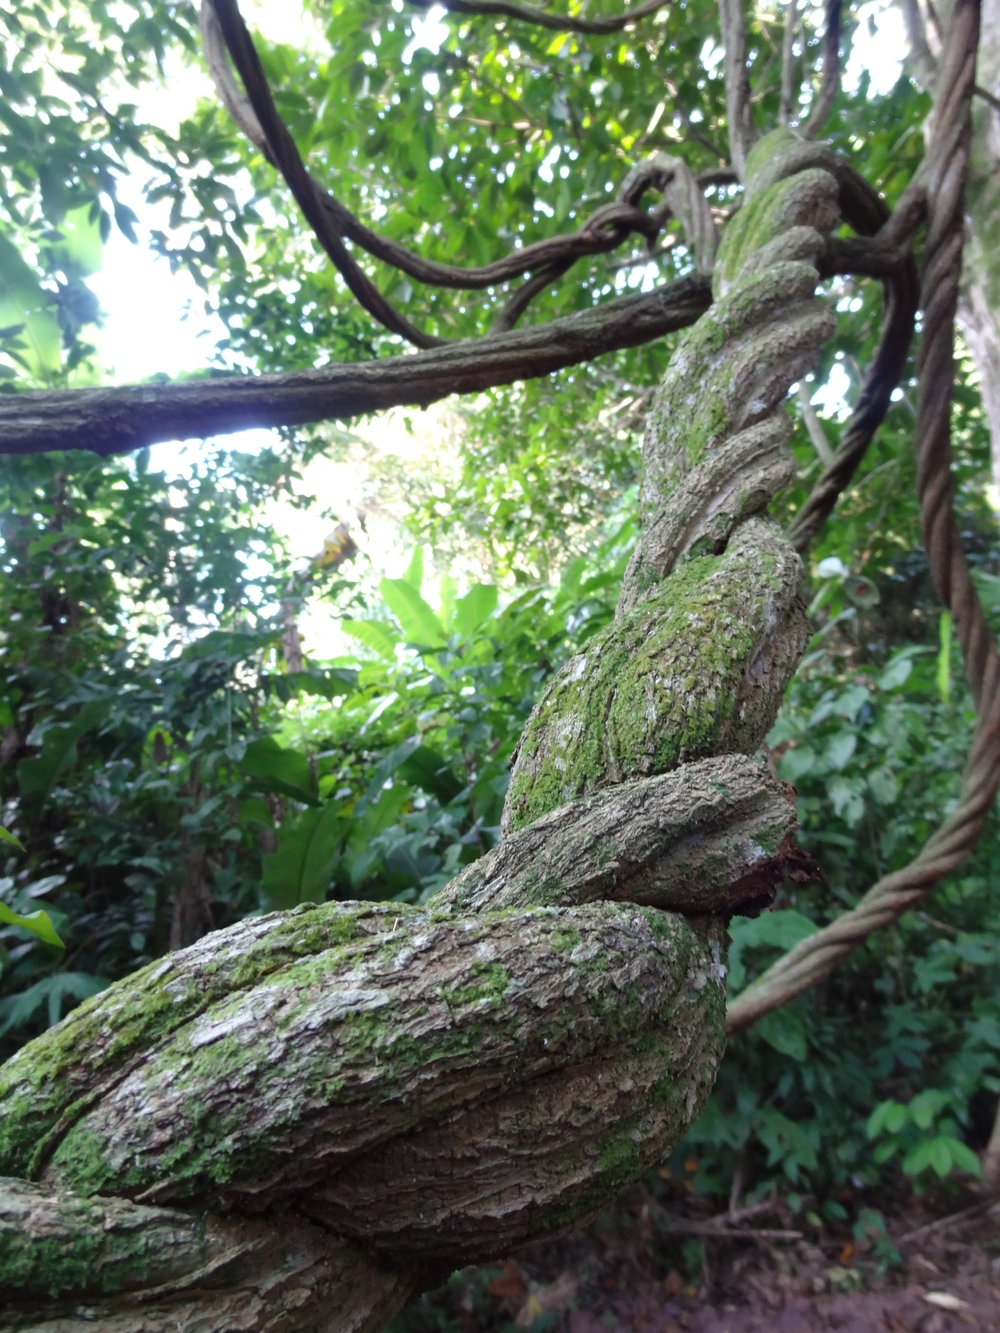 The Ayahuasca vine, taken in the Peruvian Amazon. Also known as the Great Vine, the Mother, Vine of Souls, Aya, and Yagé